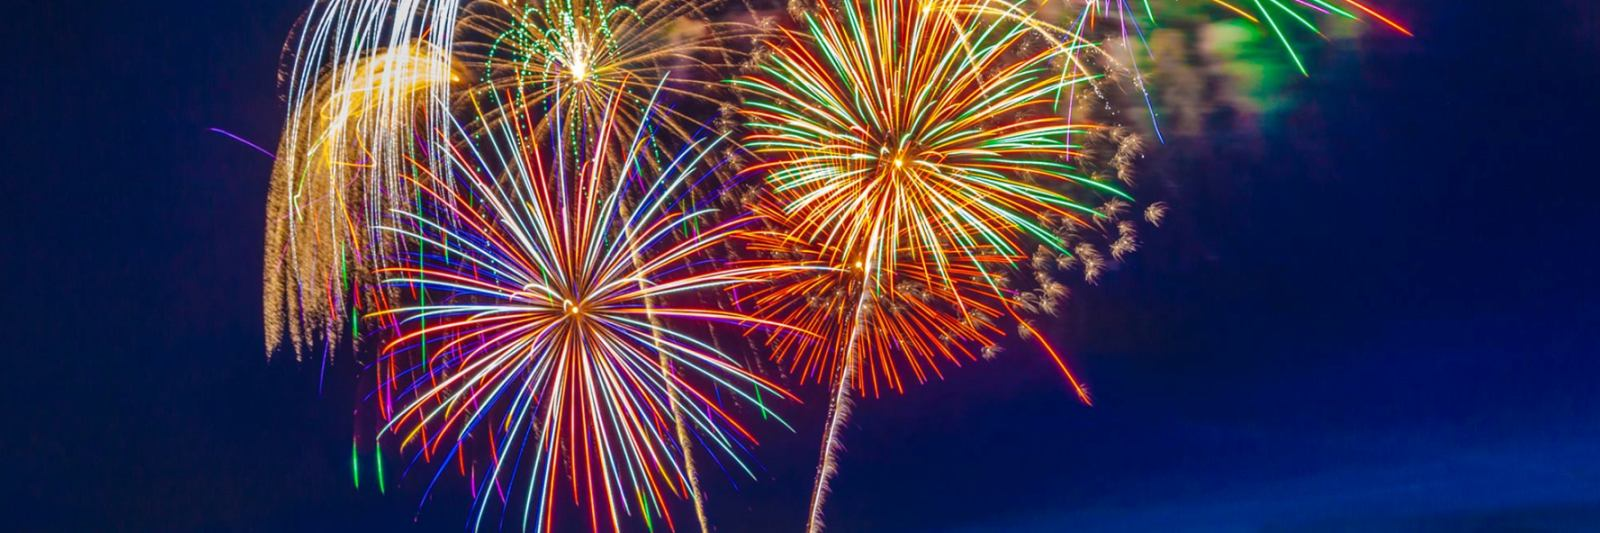 Fourth-of-July-Fireworks_Slider-pic.jpg